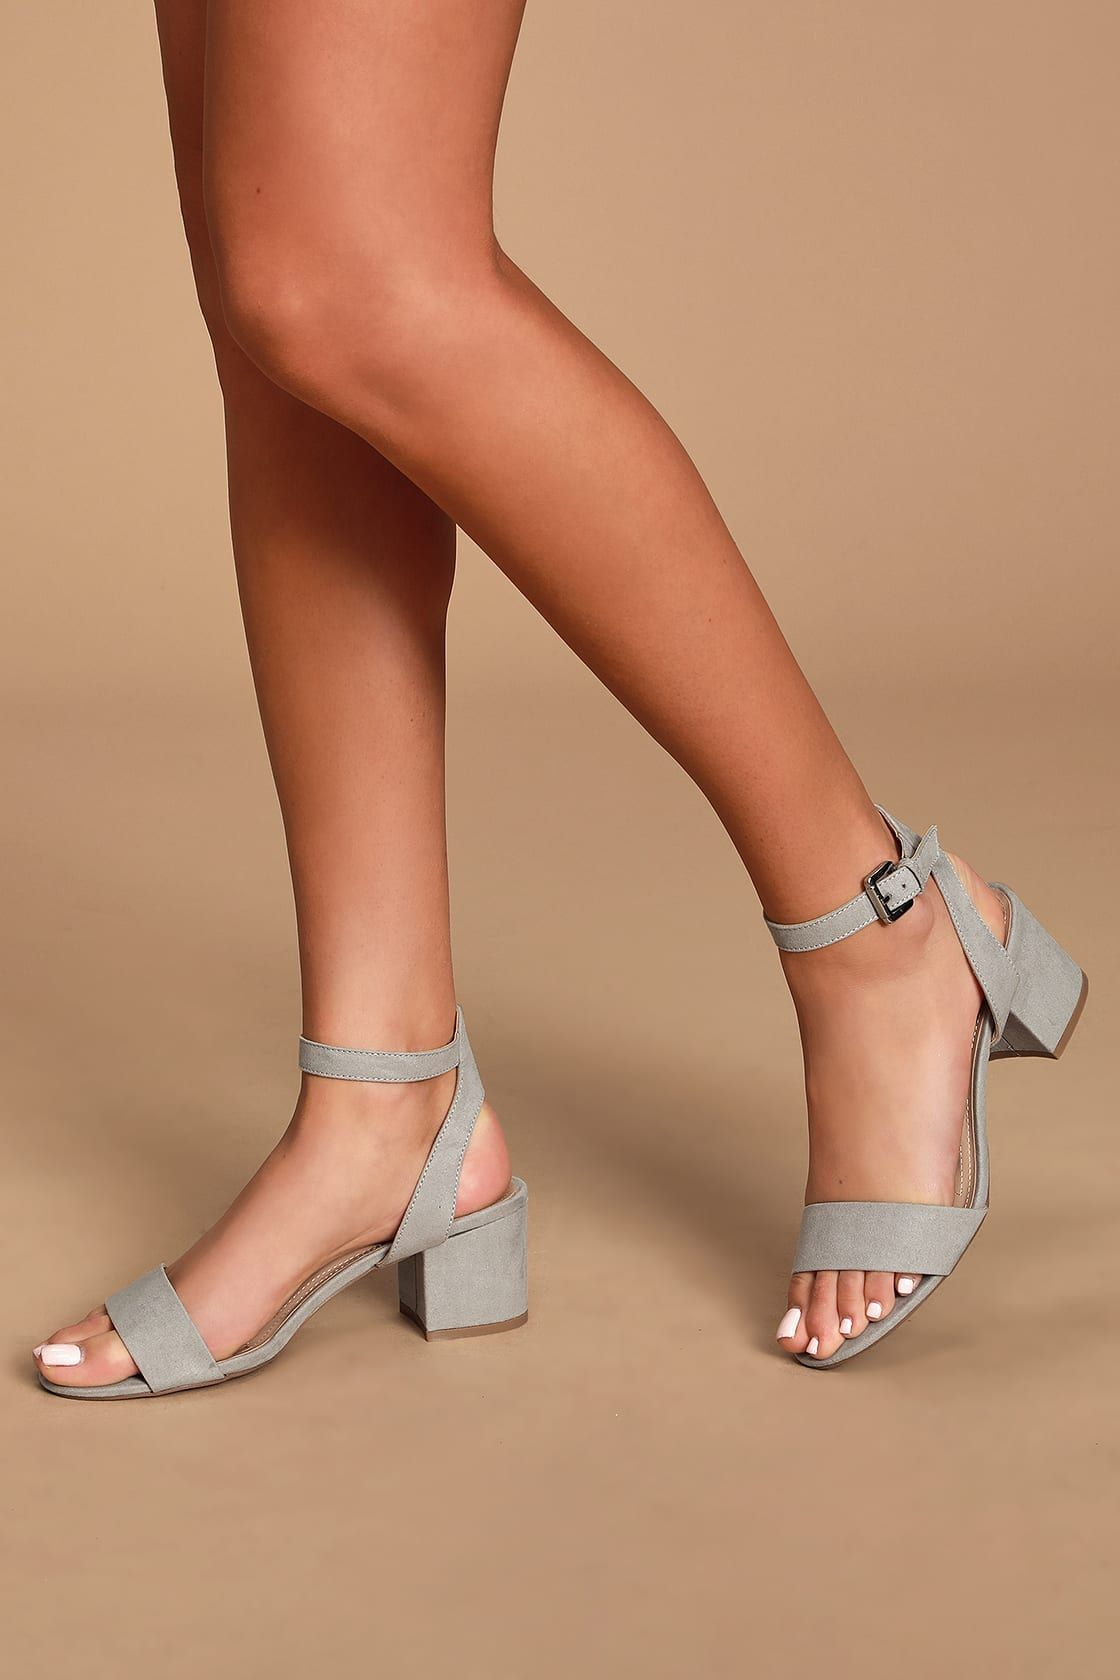 Trendy High Heel Shoes Shoes And Bags Plus Size High Heels